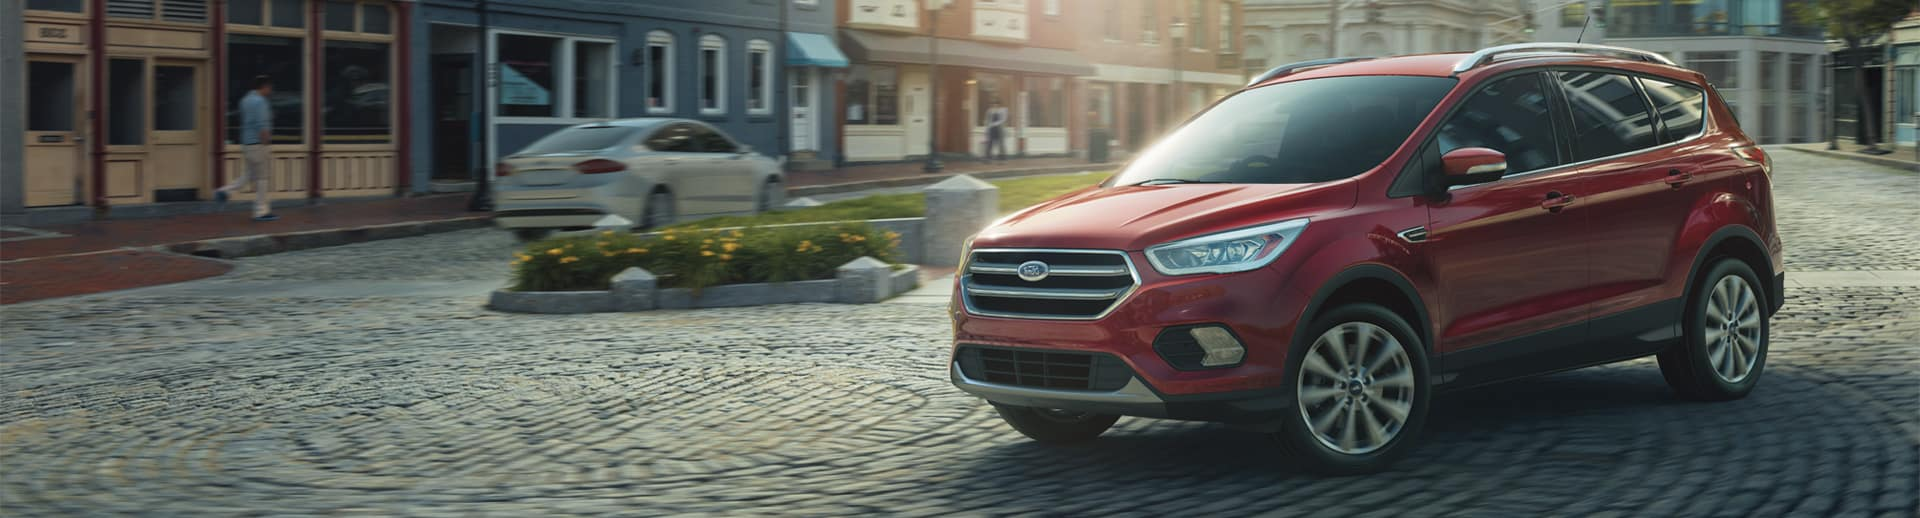 Ford Escape President's Day Deals in IL